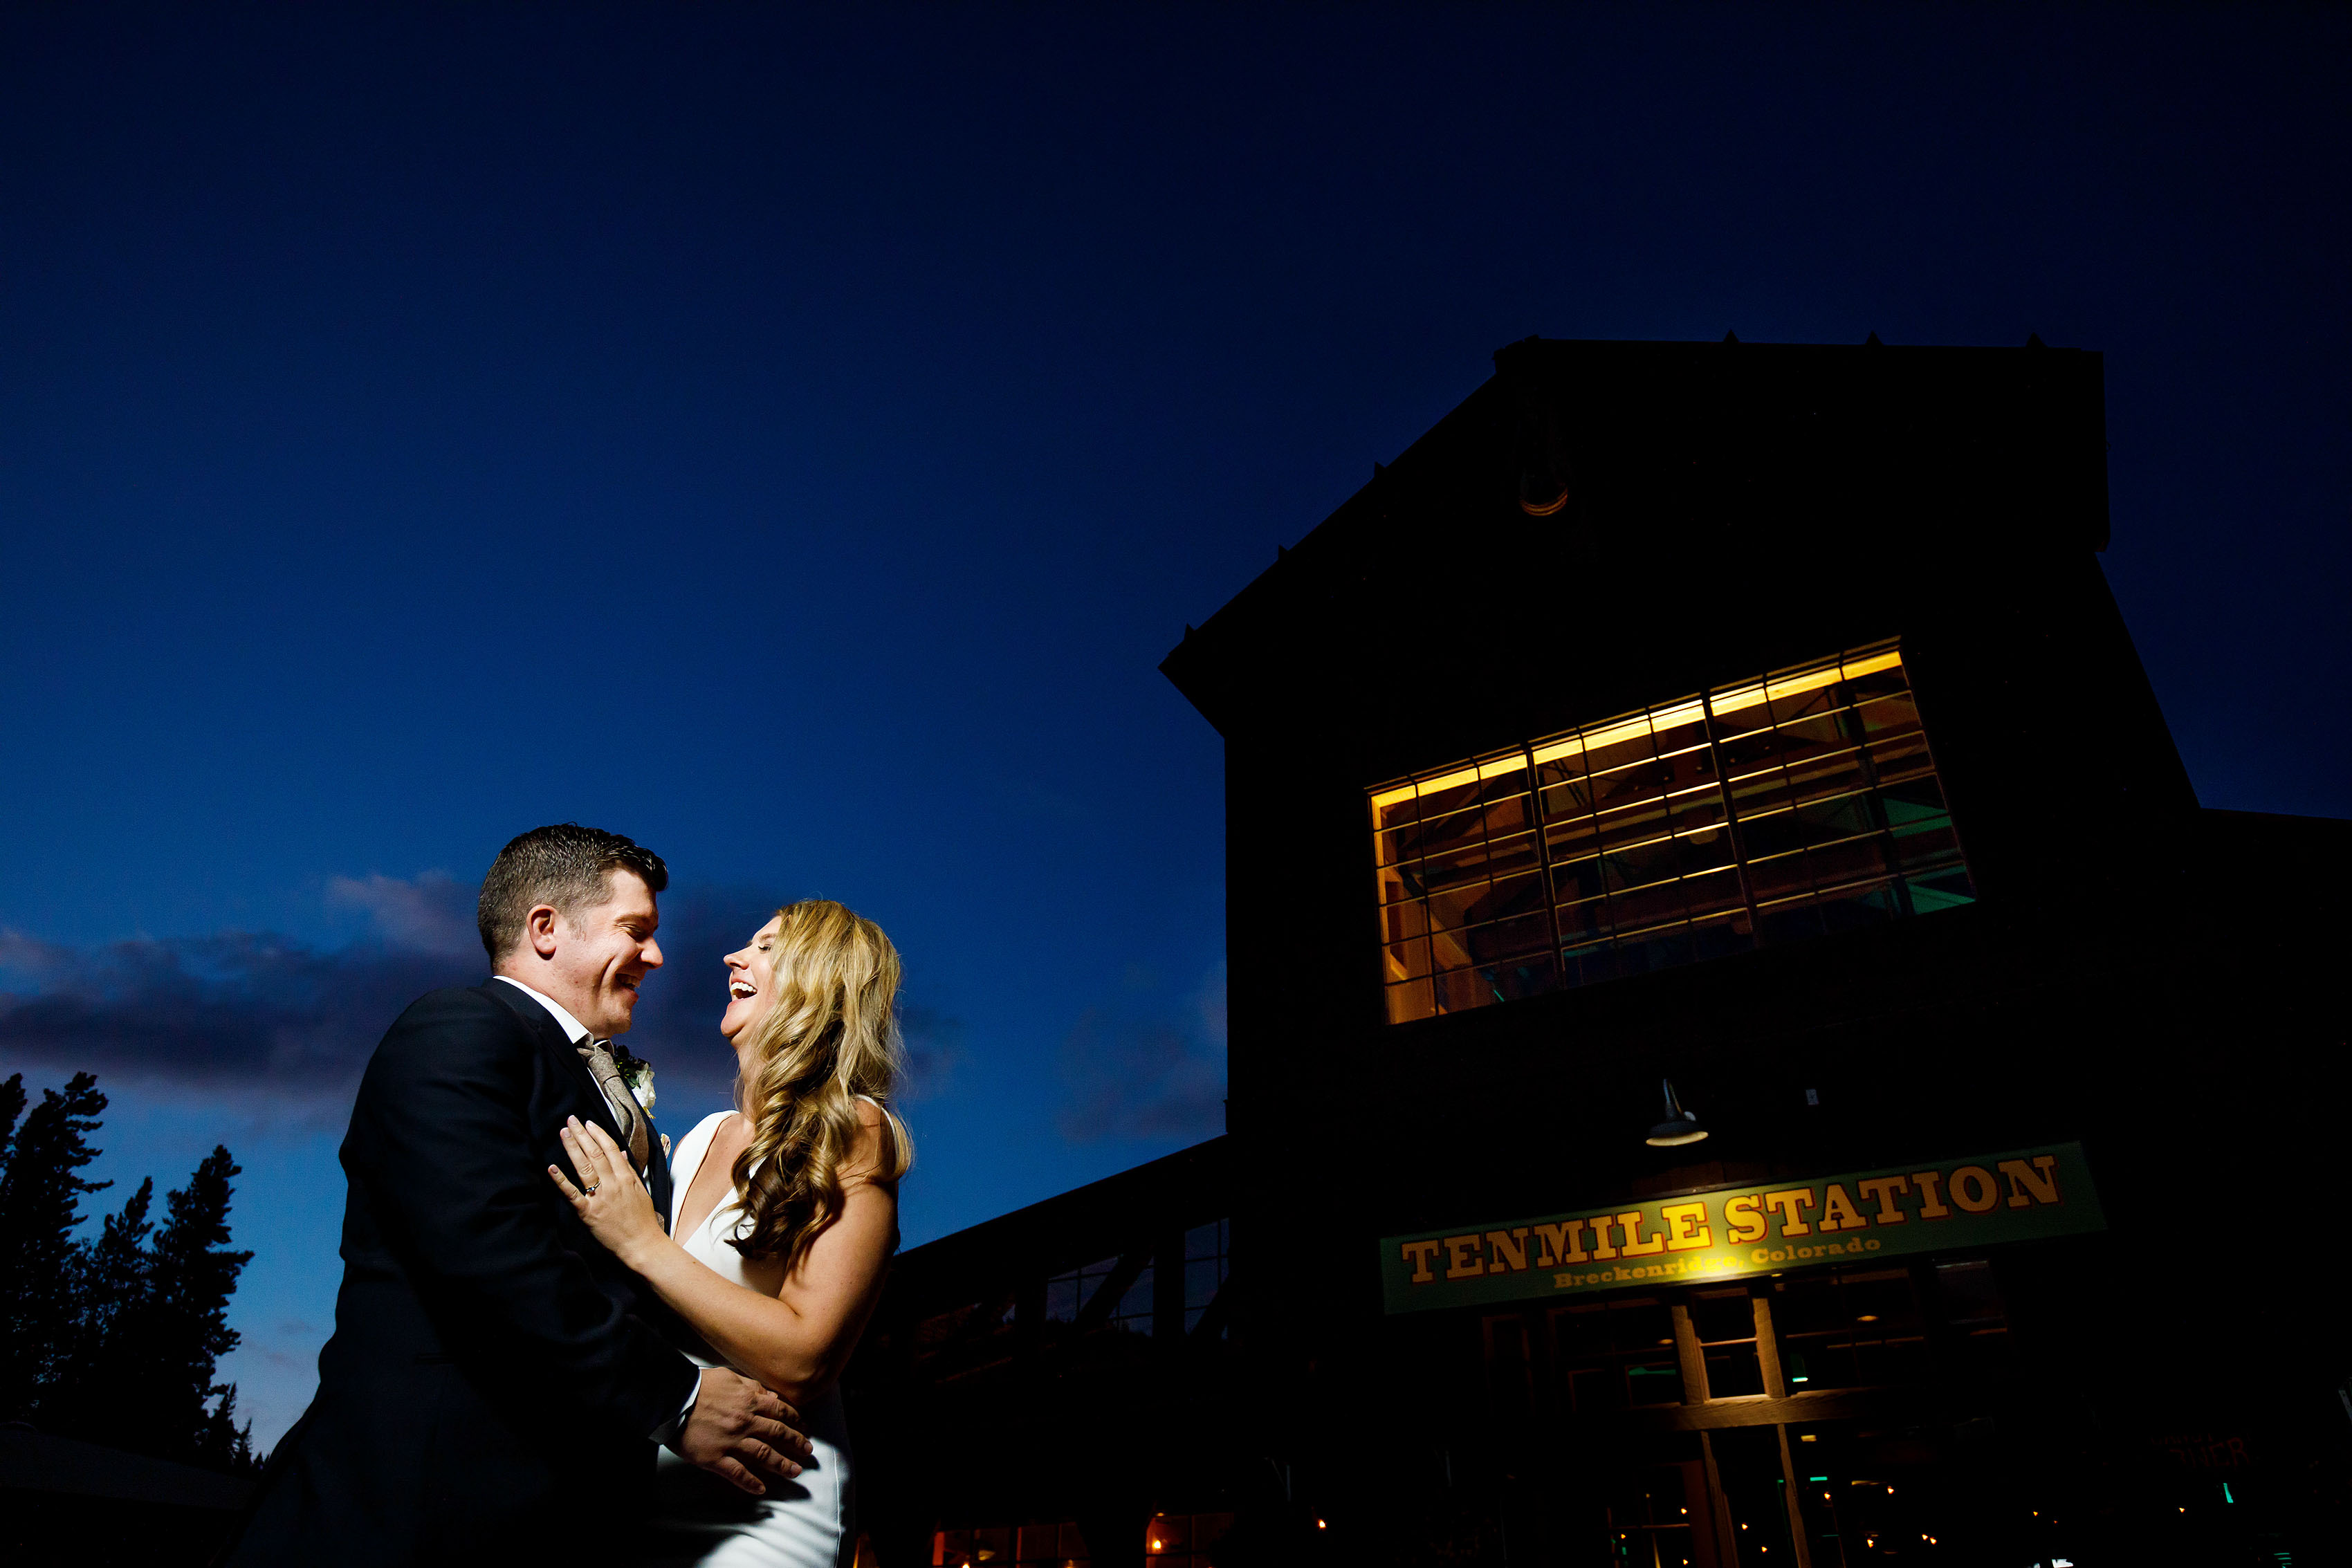 A bride and groom pose for a portrait at twilight during a TenMile Station Wedding